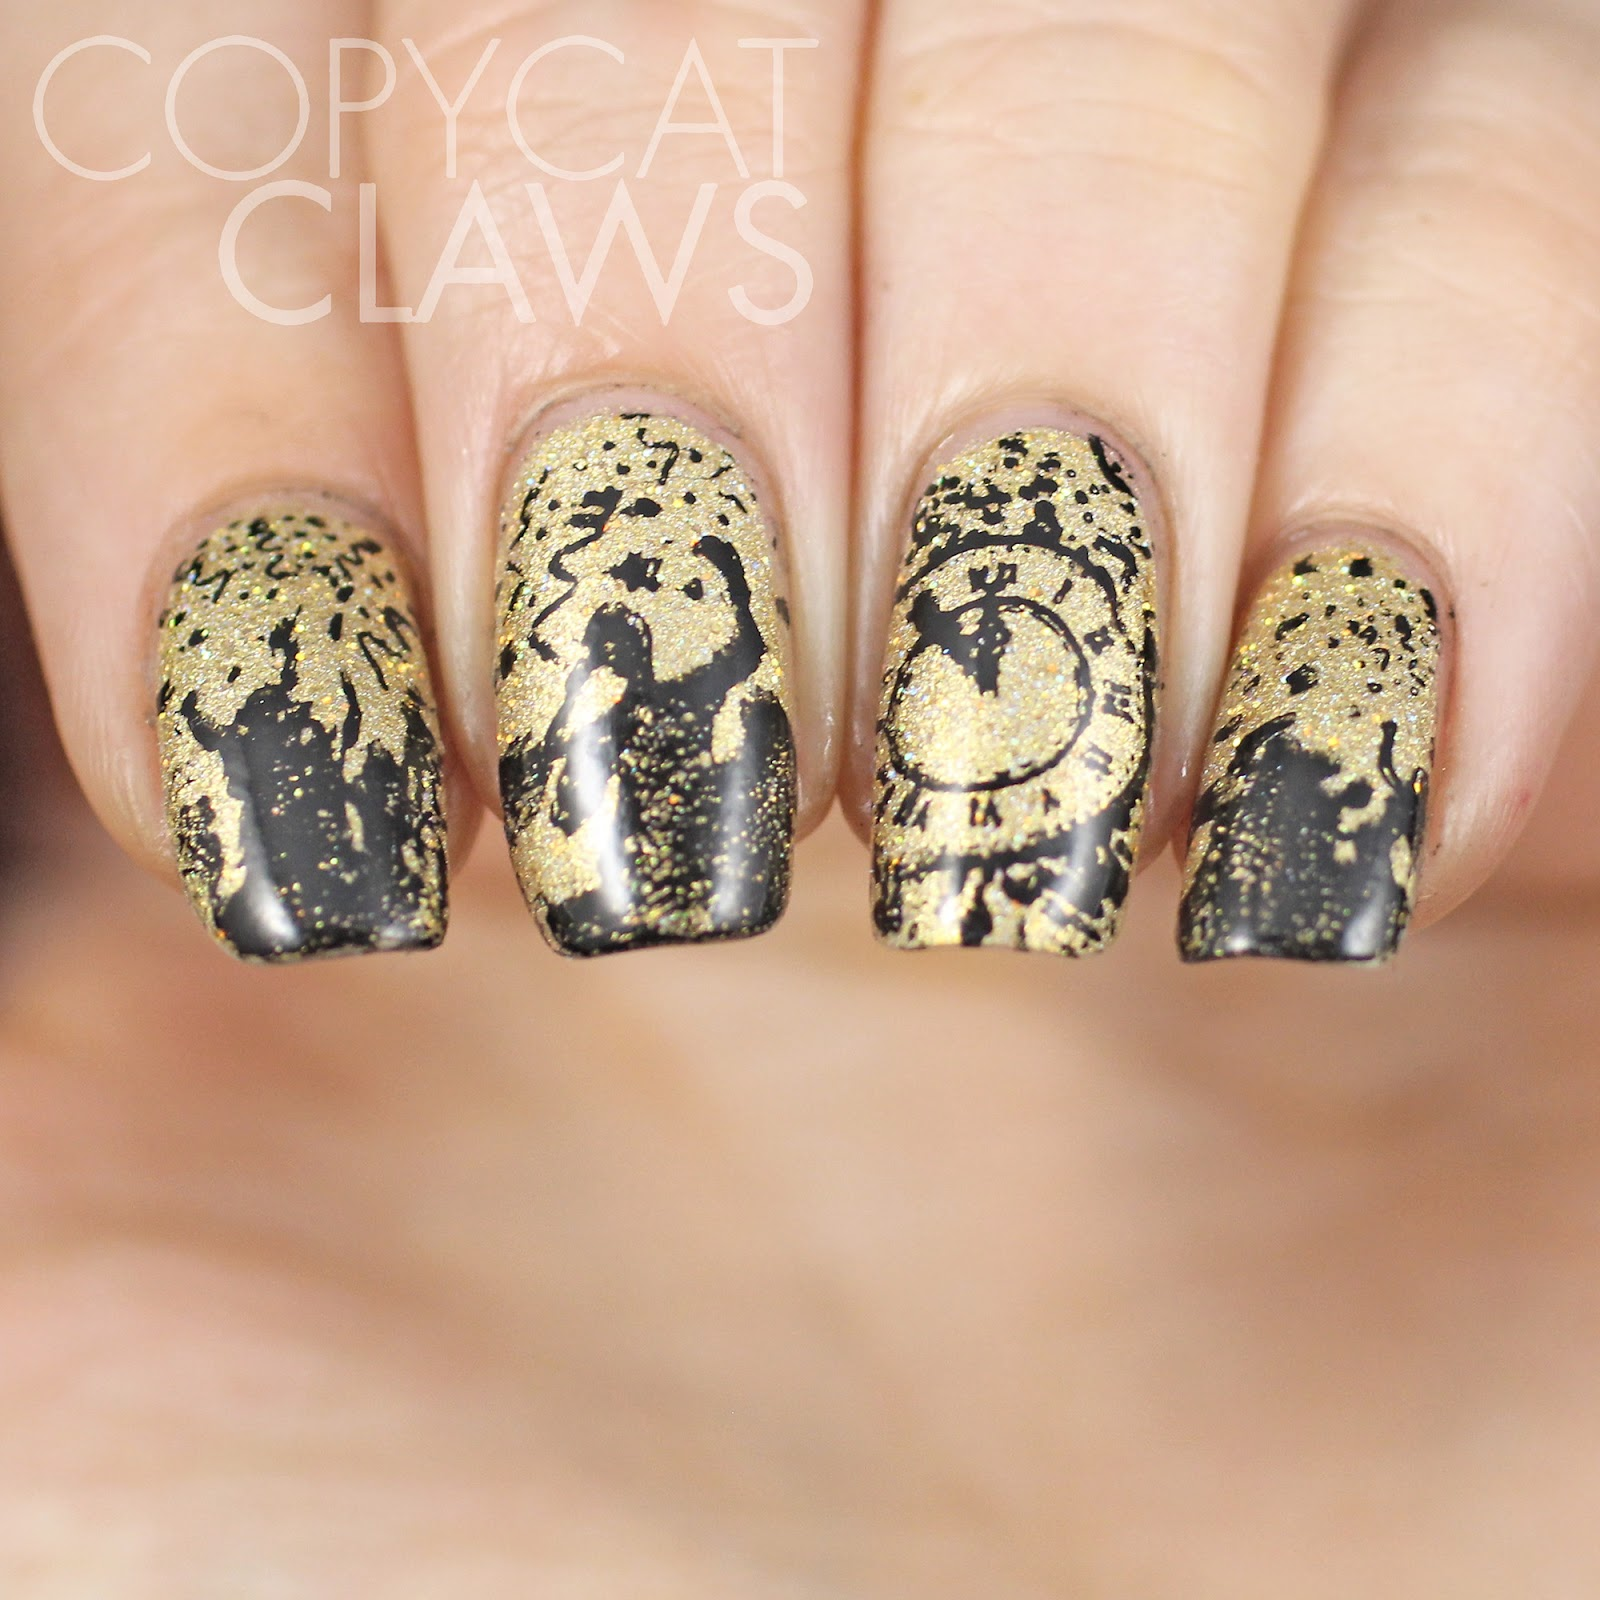 Copycat Claws: Sunday Stamping - Happy New Year 2015